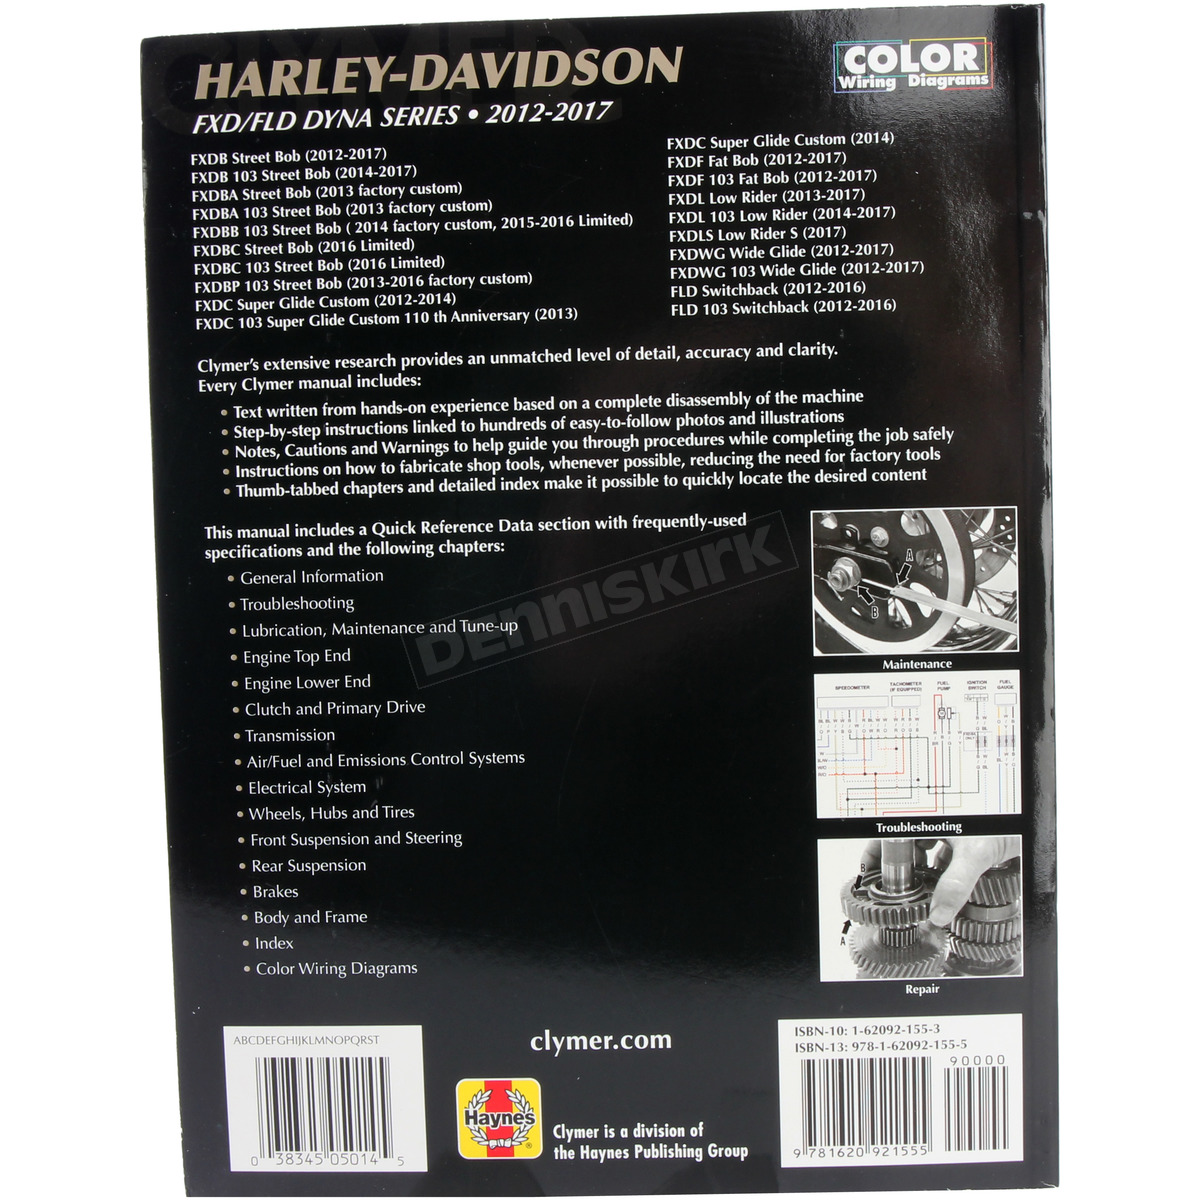 Clymer Repair Manuals 4201 0279 Harley Davidson Motorcycle 2015 Dyna Wiring Diagram Dennis Kirk